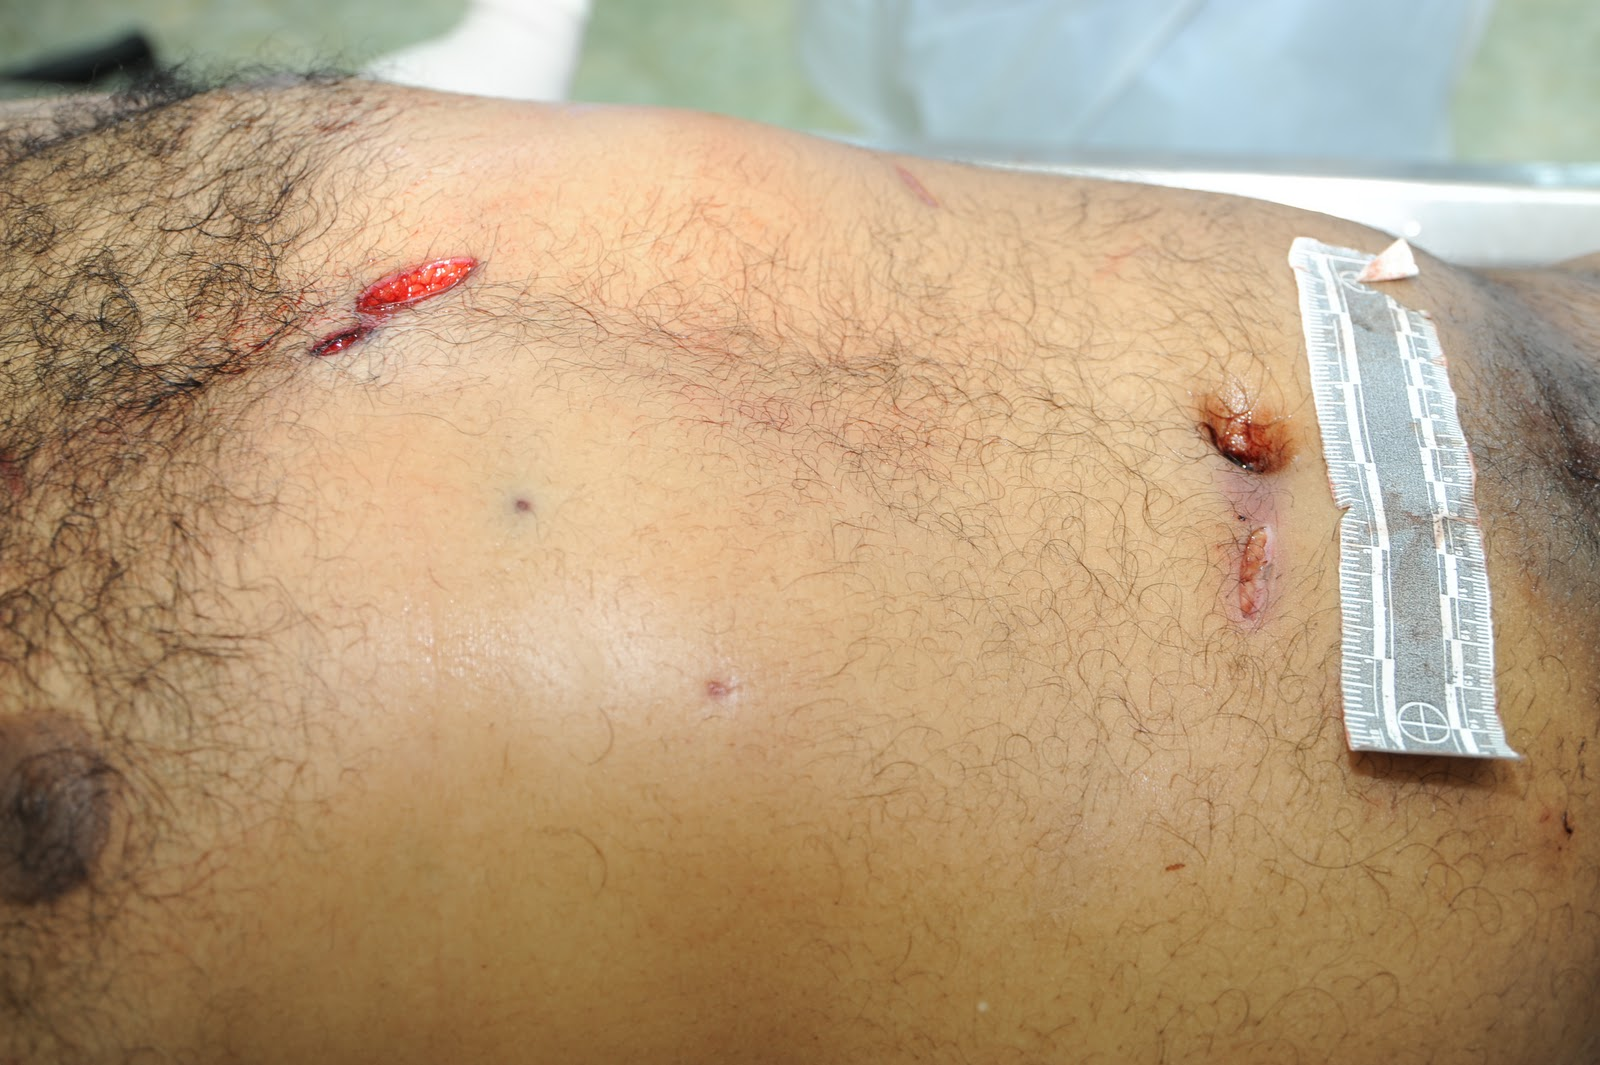 stab wounds bing images